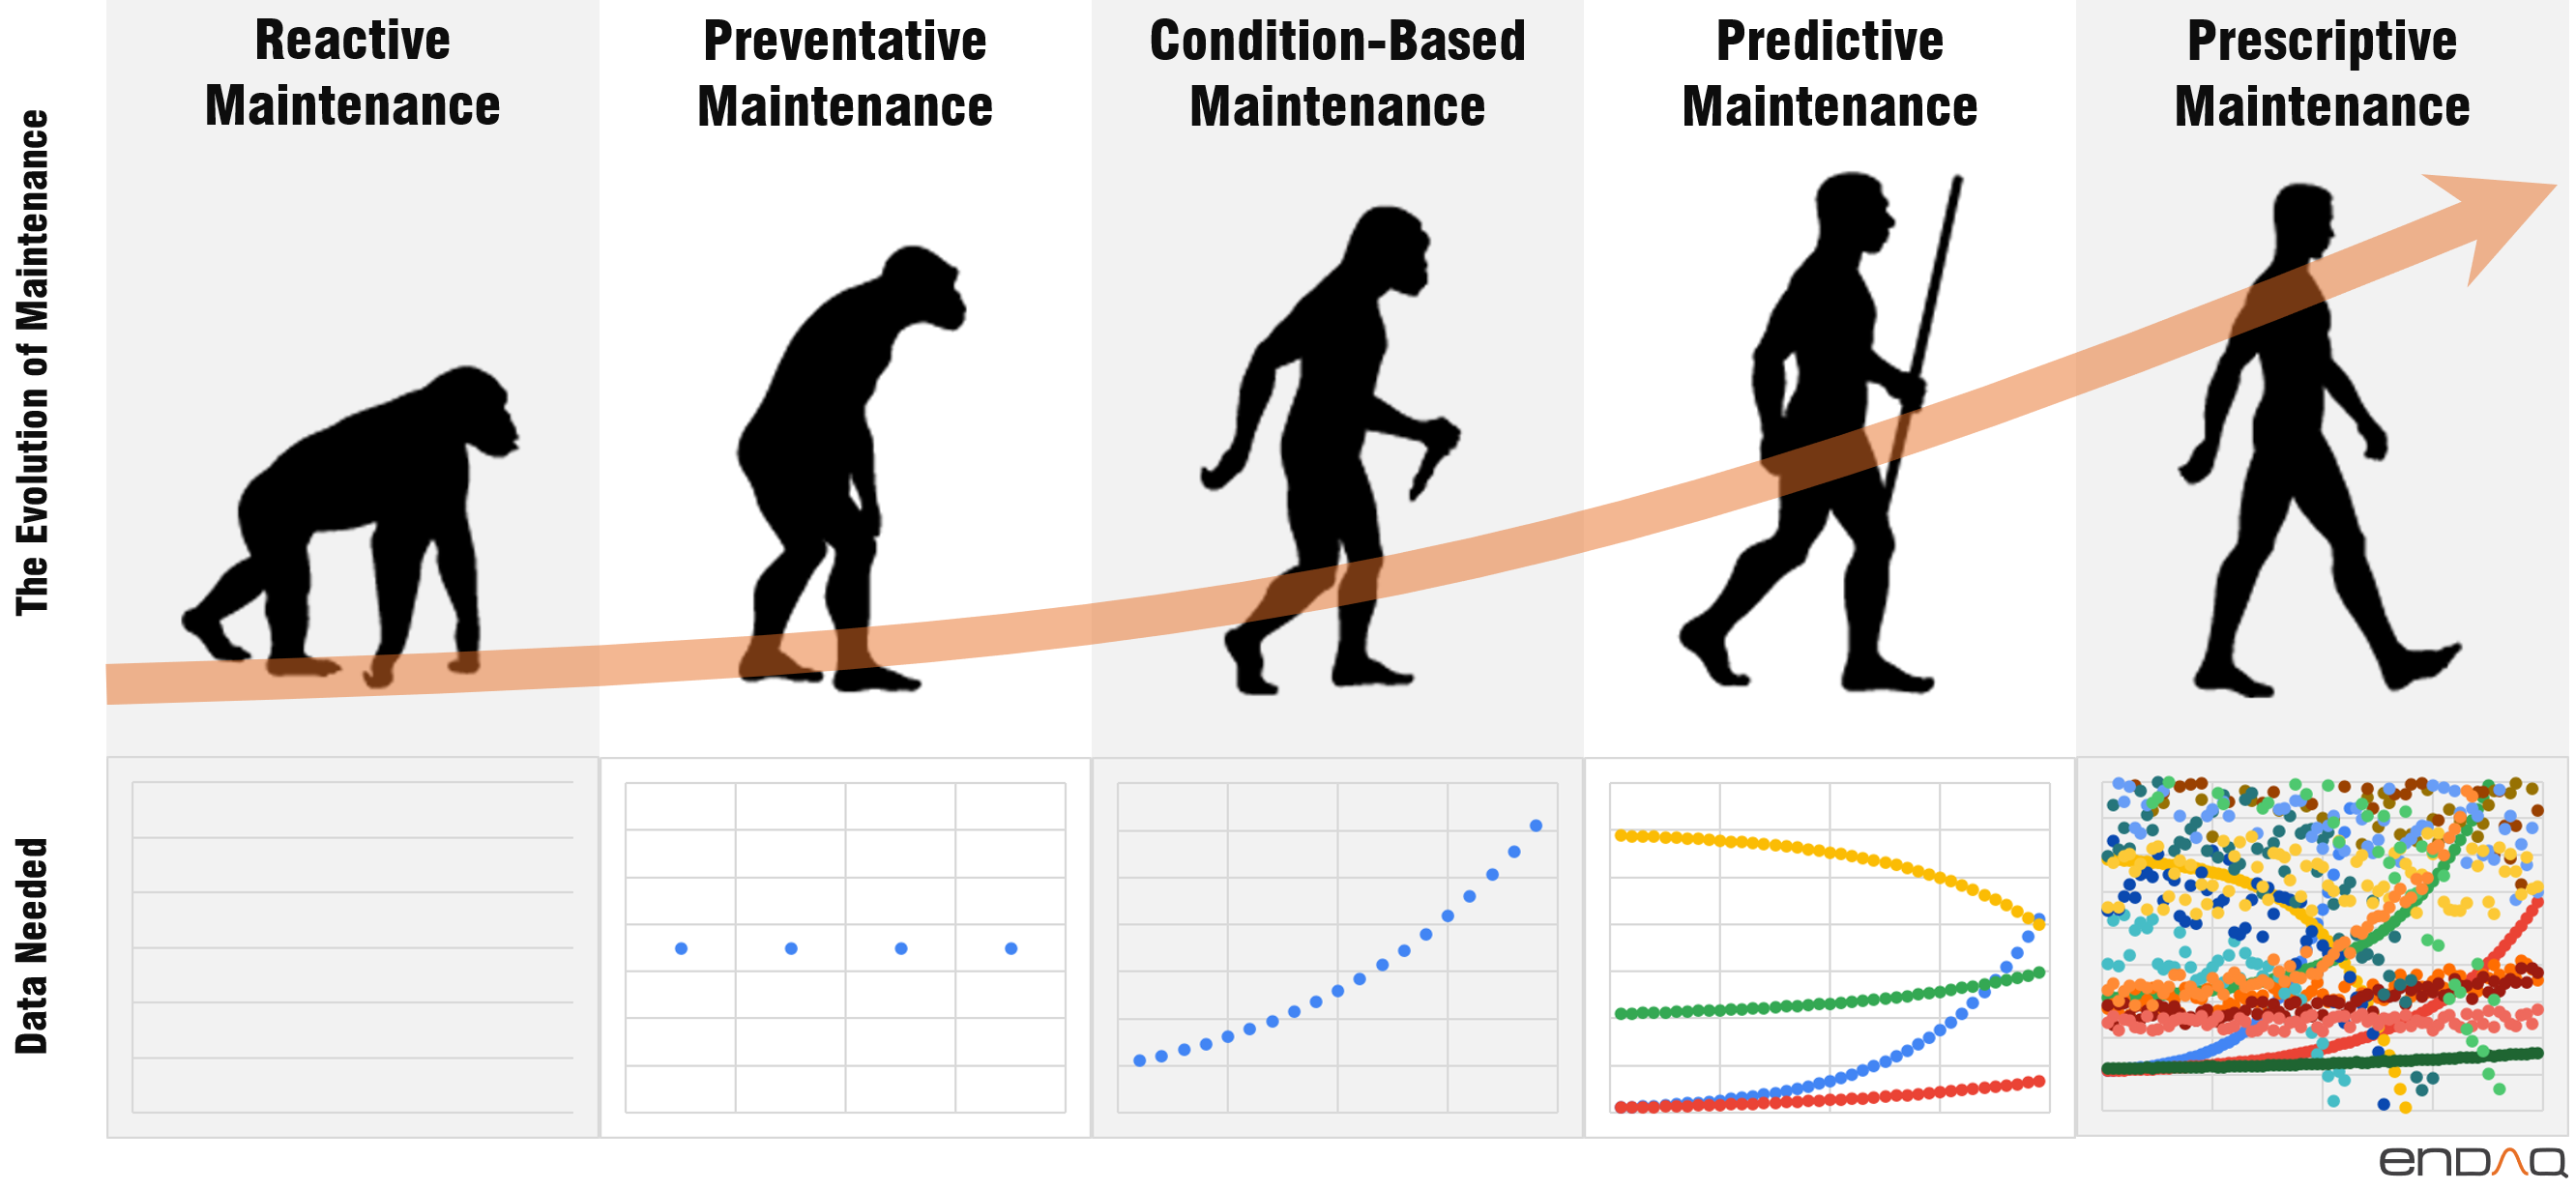 Evolution of Maintenance Reactive Preventative Condition Based Predictive Prescriptive Data